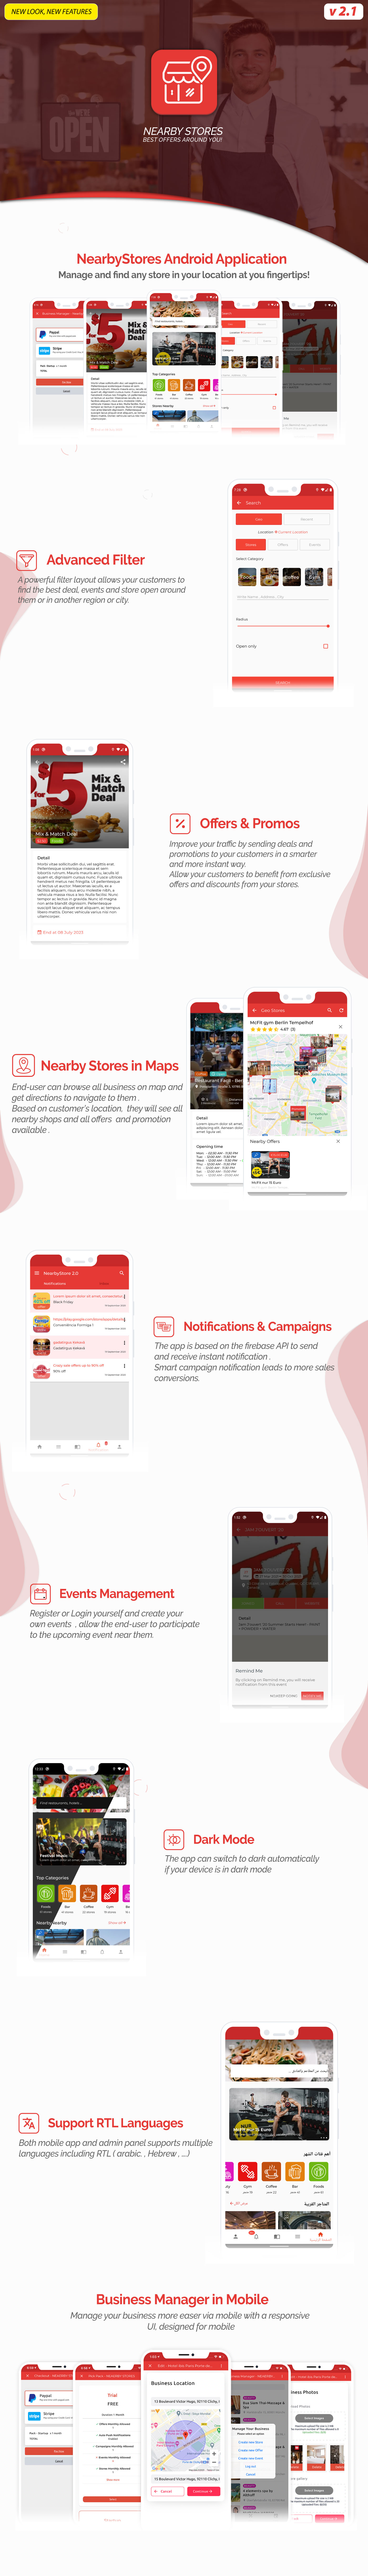 Nearby Stores Android - Offers, Events, Multi-Purpose, Restaurant, Market - Subscription & WEB Panel - 3